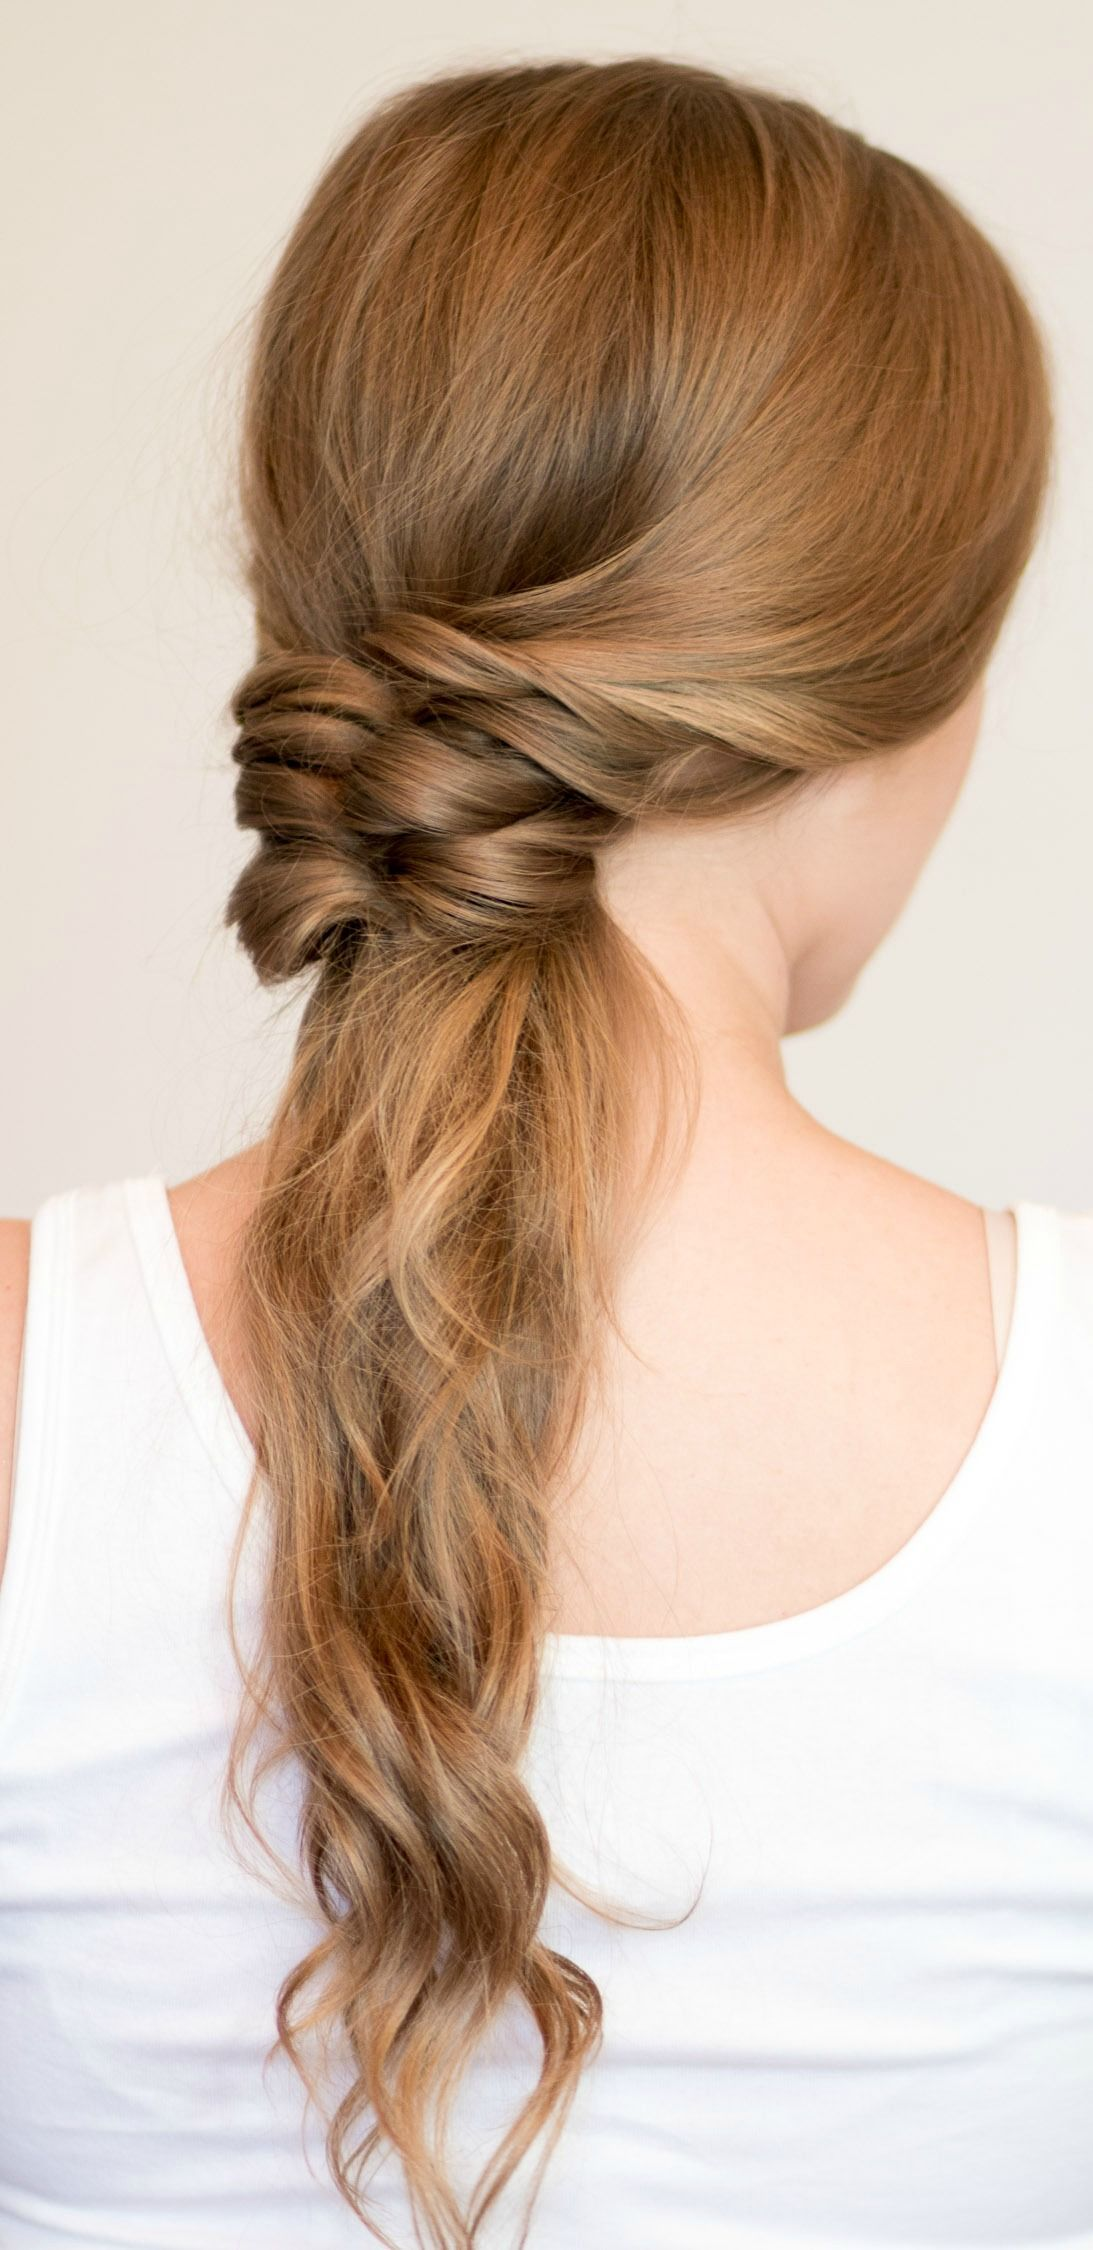 Faux braided ponytail hair tutorial easy heatless hairstyles for